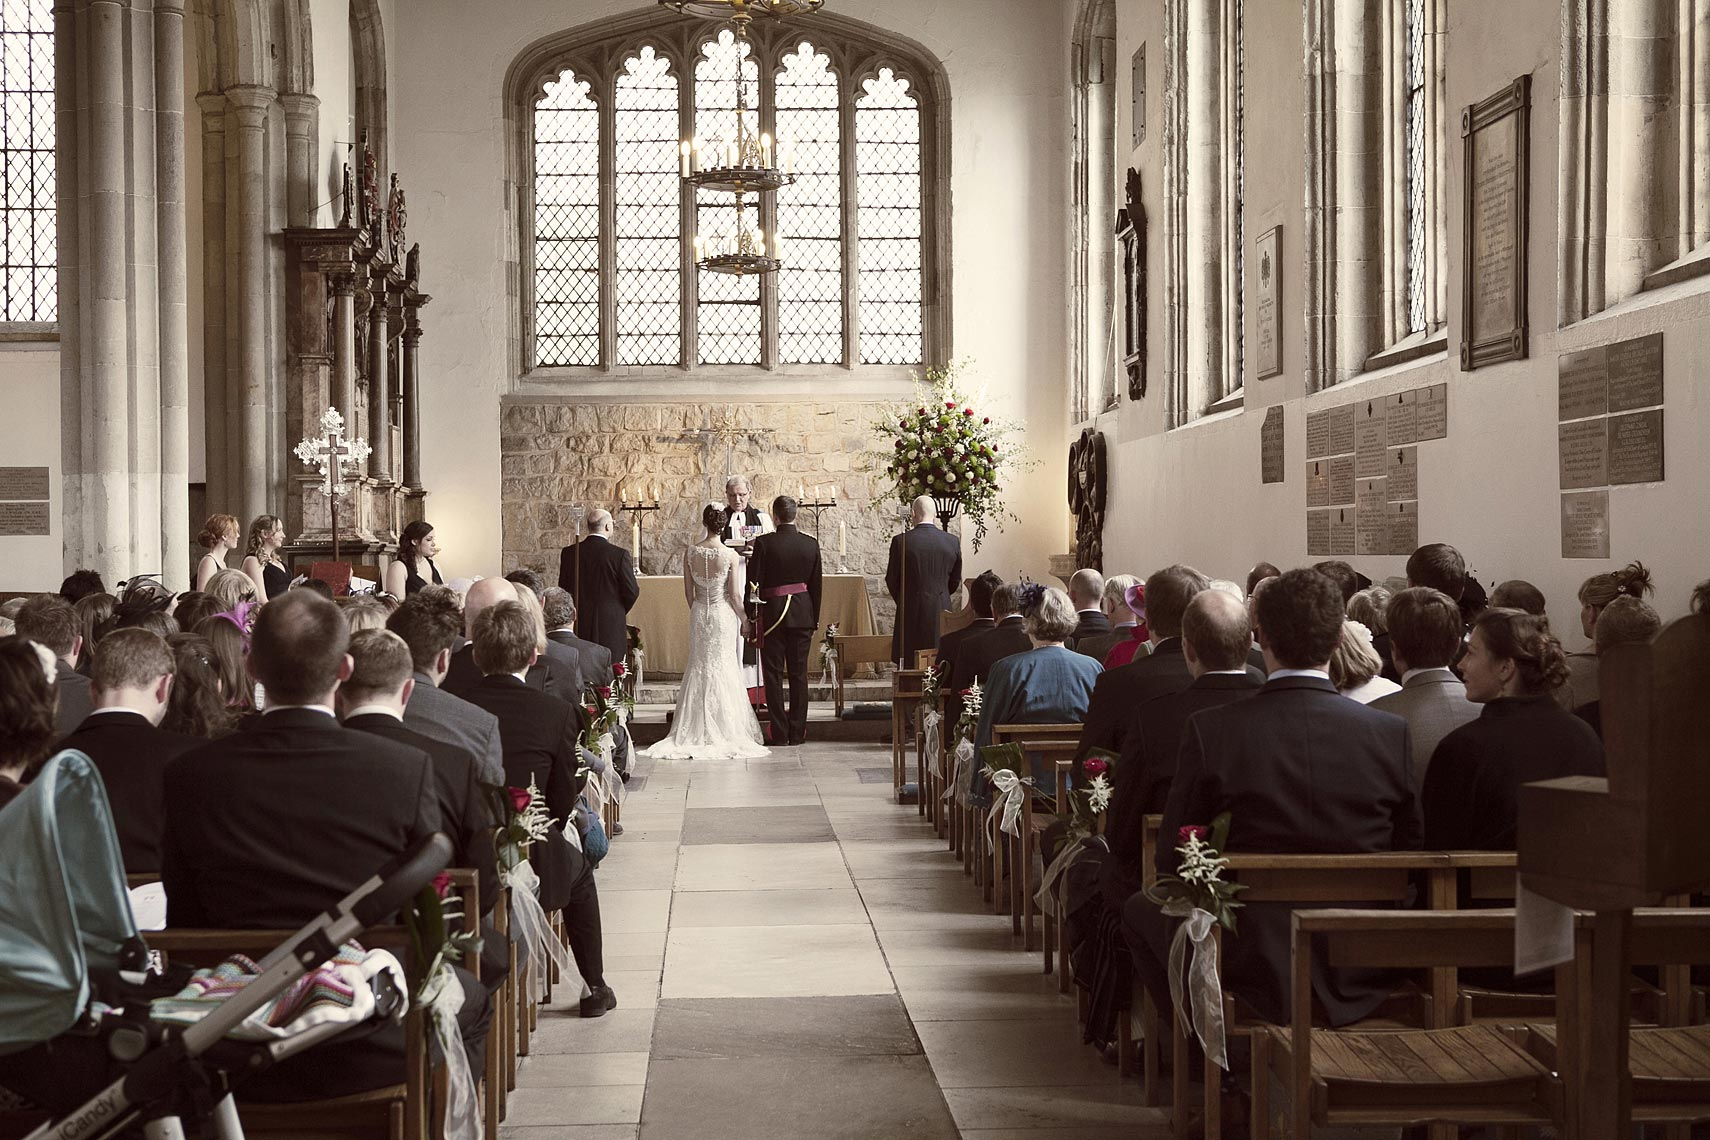 Tower-of-London-wedding-photography.jpg